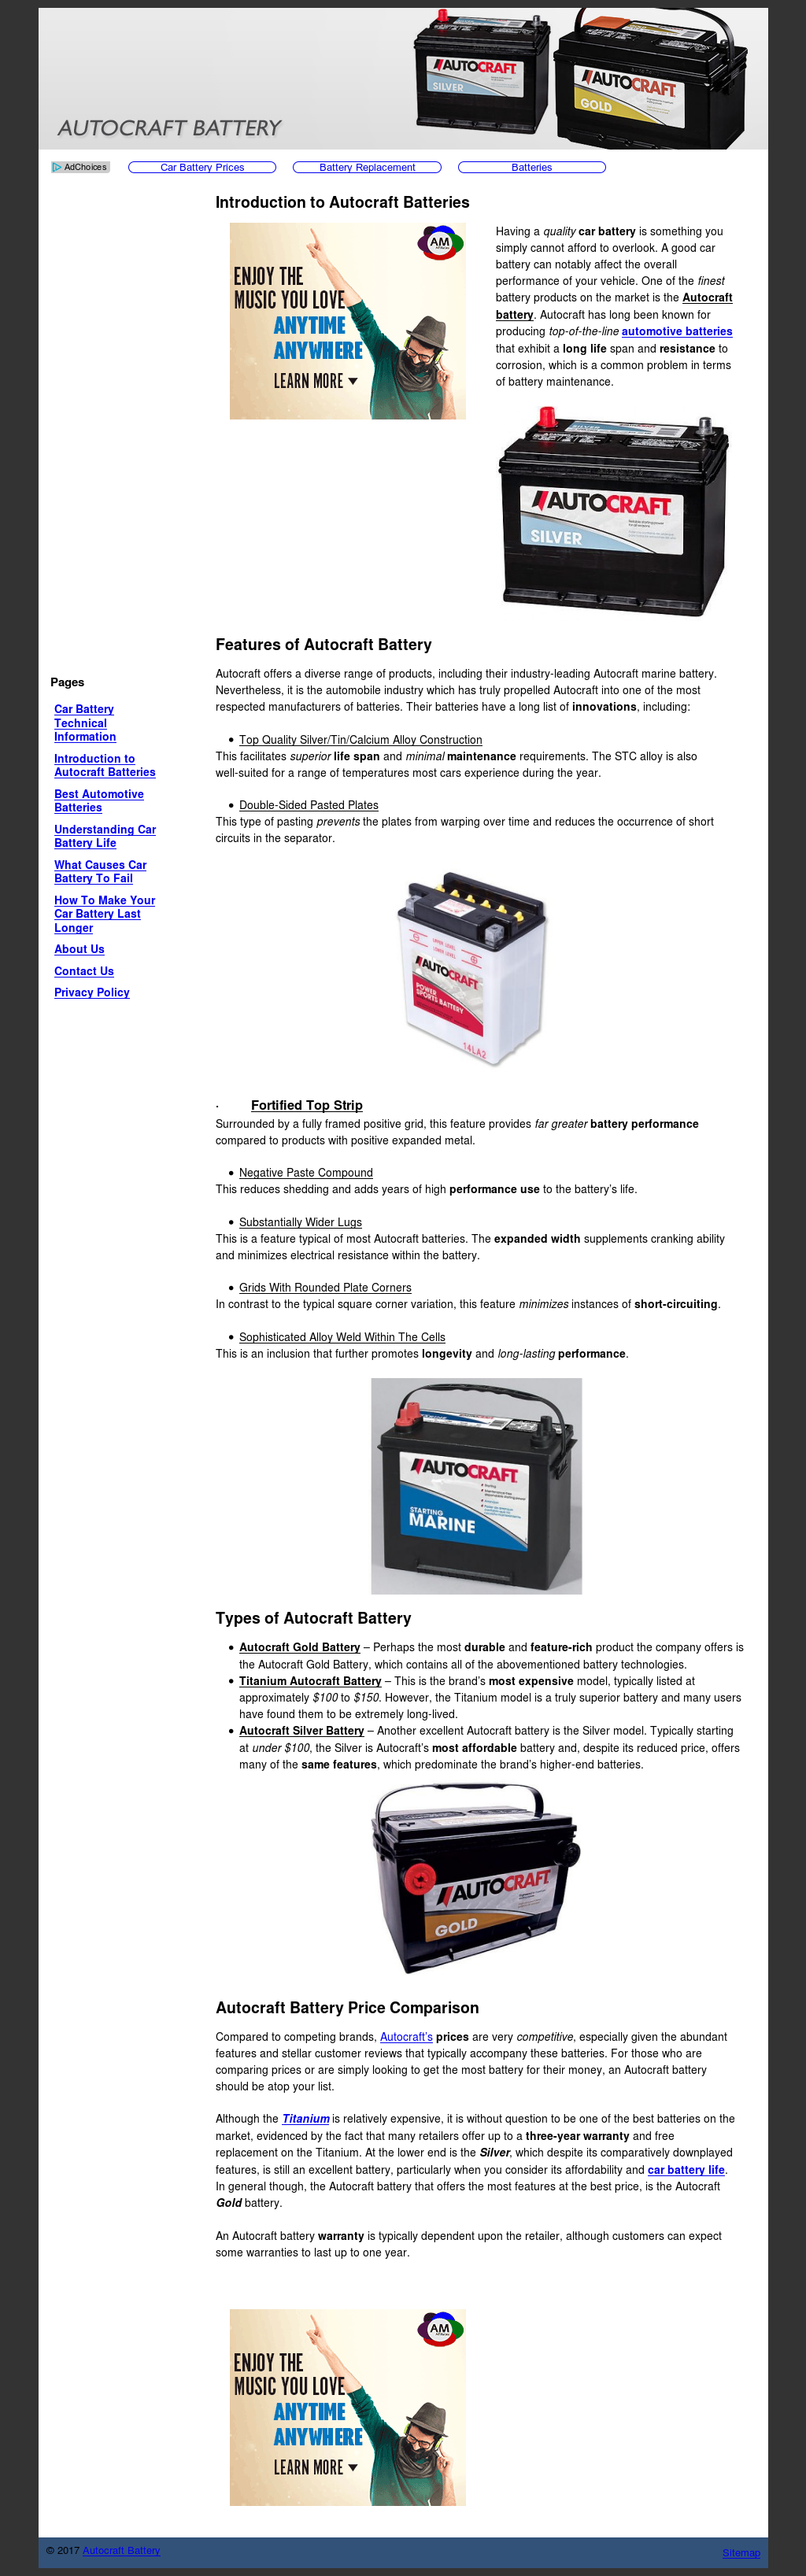 Autocraft Battery Review >> Autocraft Battery Competitors Revenue And Employees Owler